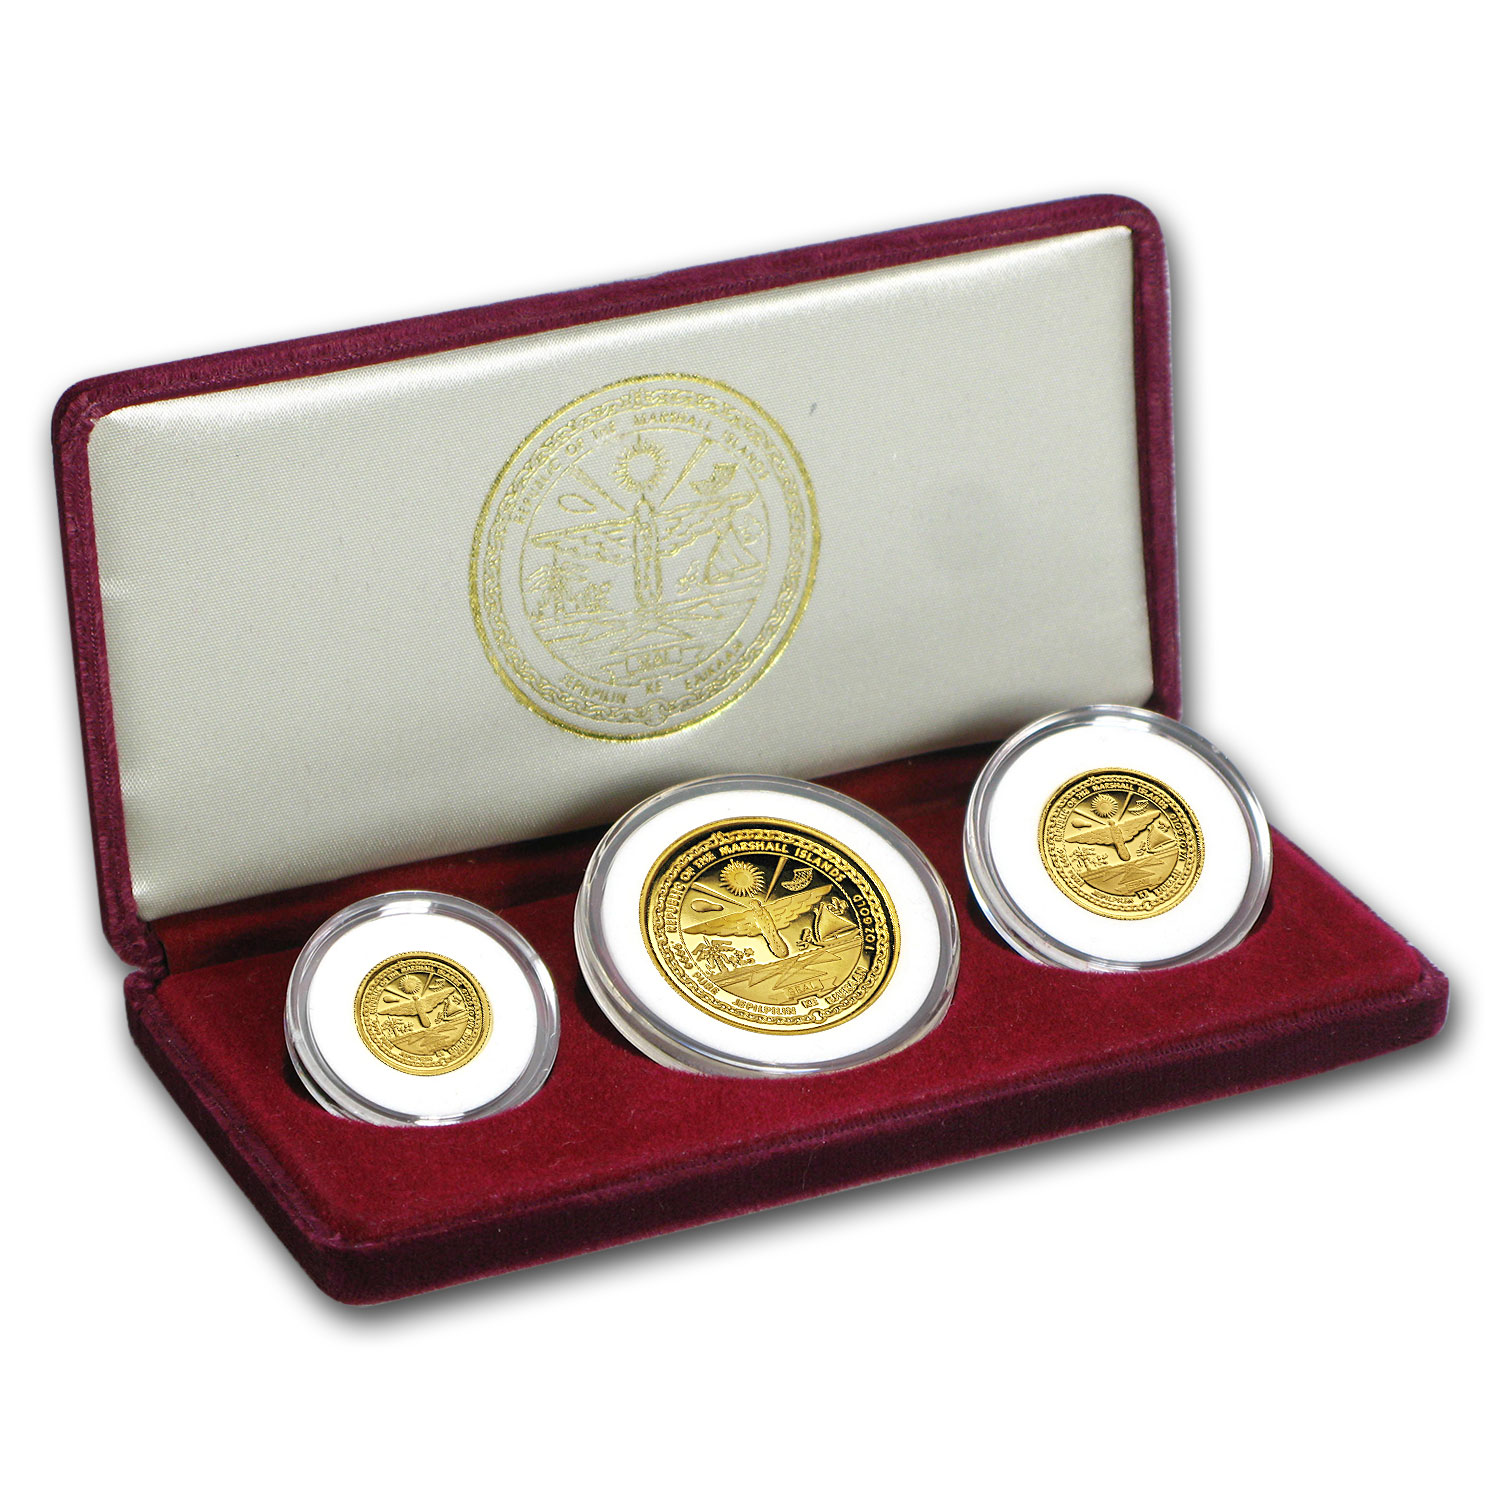 1986 Marshall Islands 3-Coin Gold Proof Set